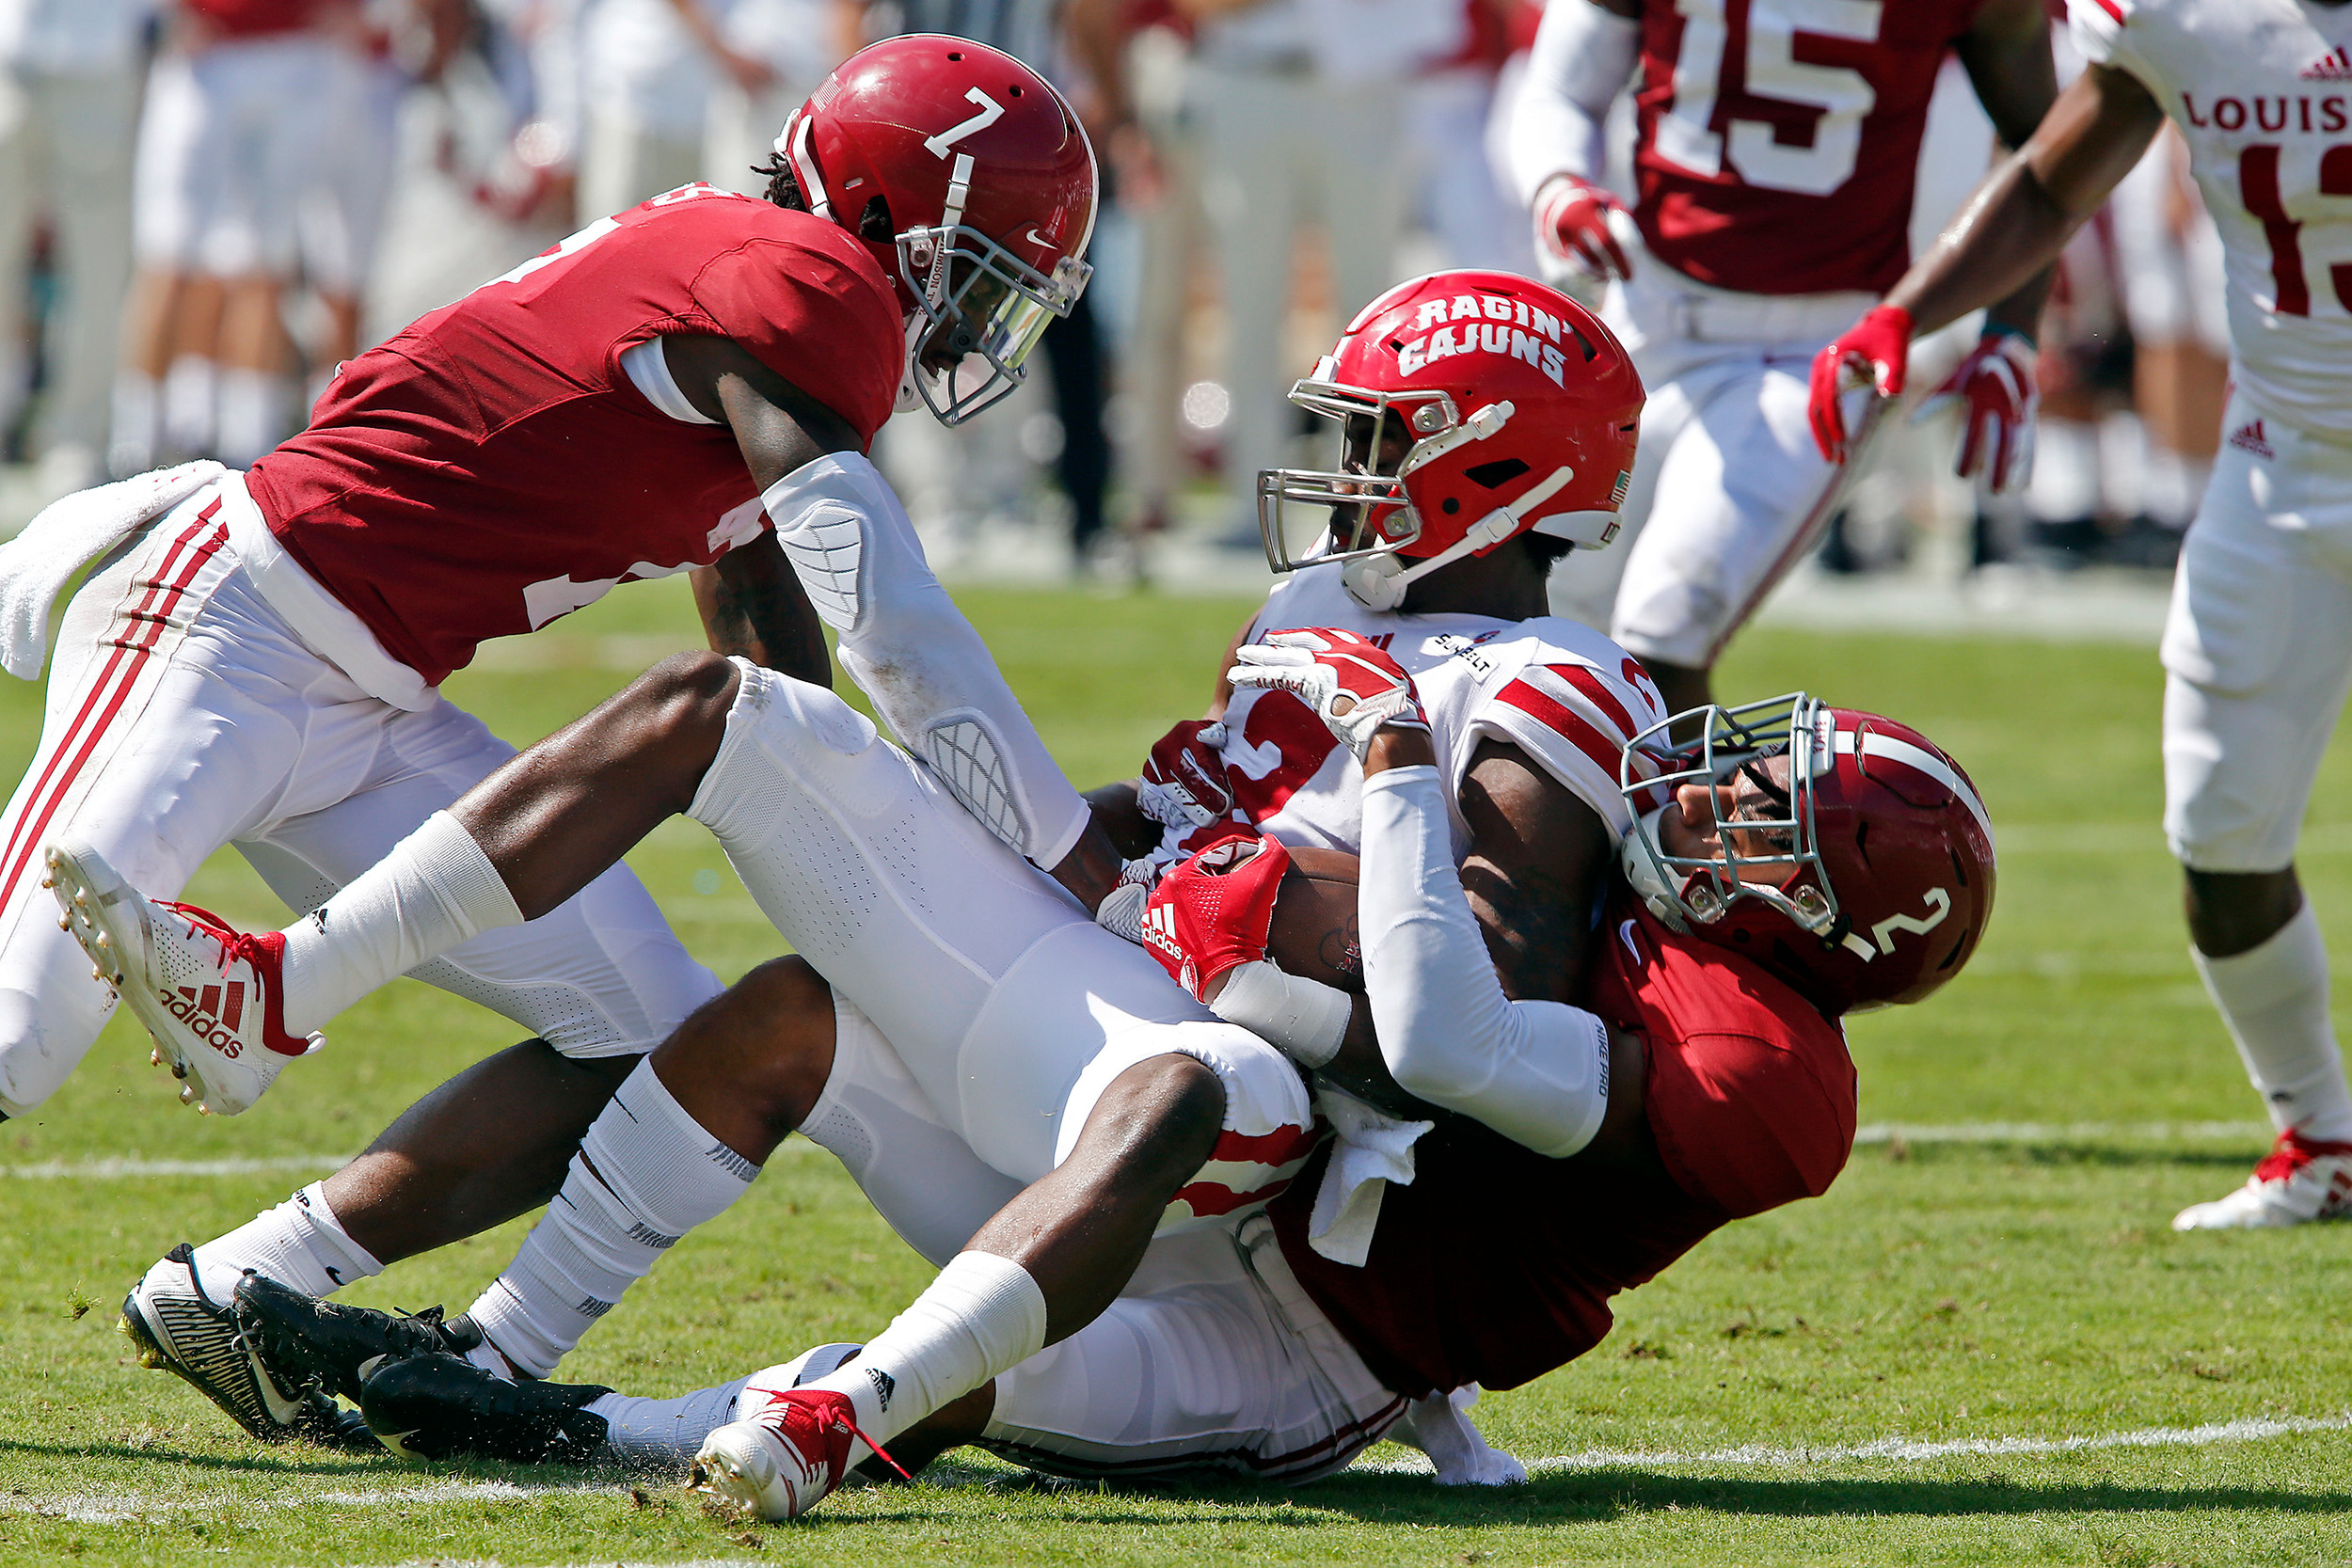 Alabama Crimson Tide defensive back Patrick Surtain II (2) makes a tackle while Trevon Diggs (7) assists at Bryant-Denny Stadium in Tuscaloosa, Al on September 29, 2018. Jason Clark / Daily Mountain Eagle